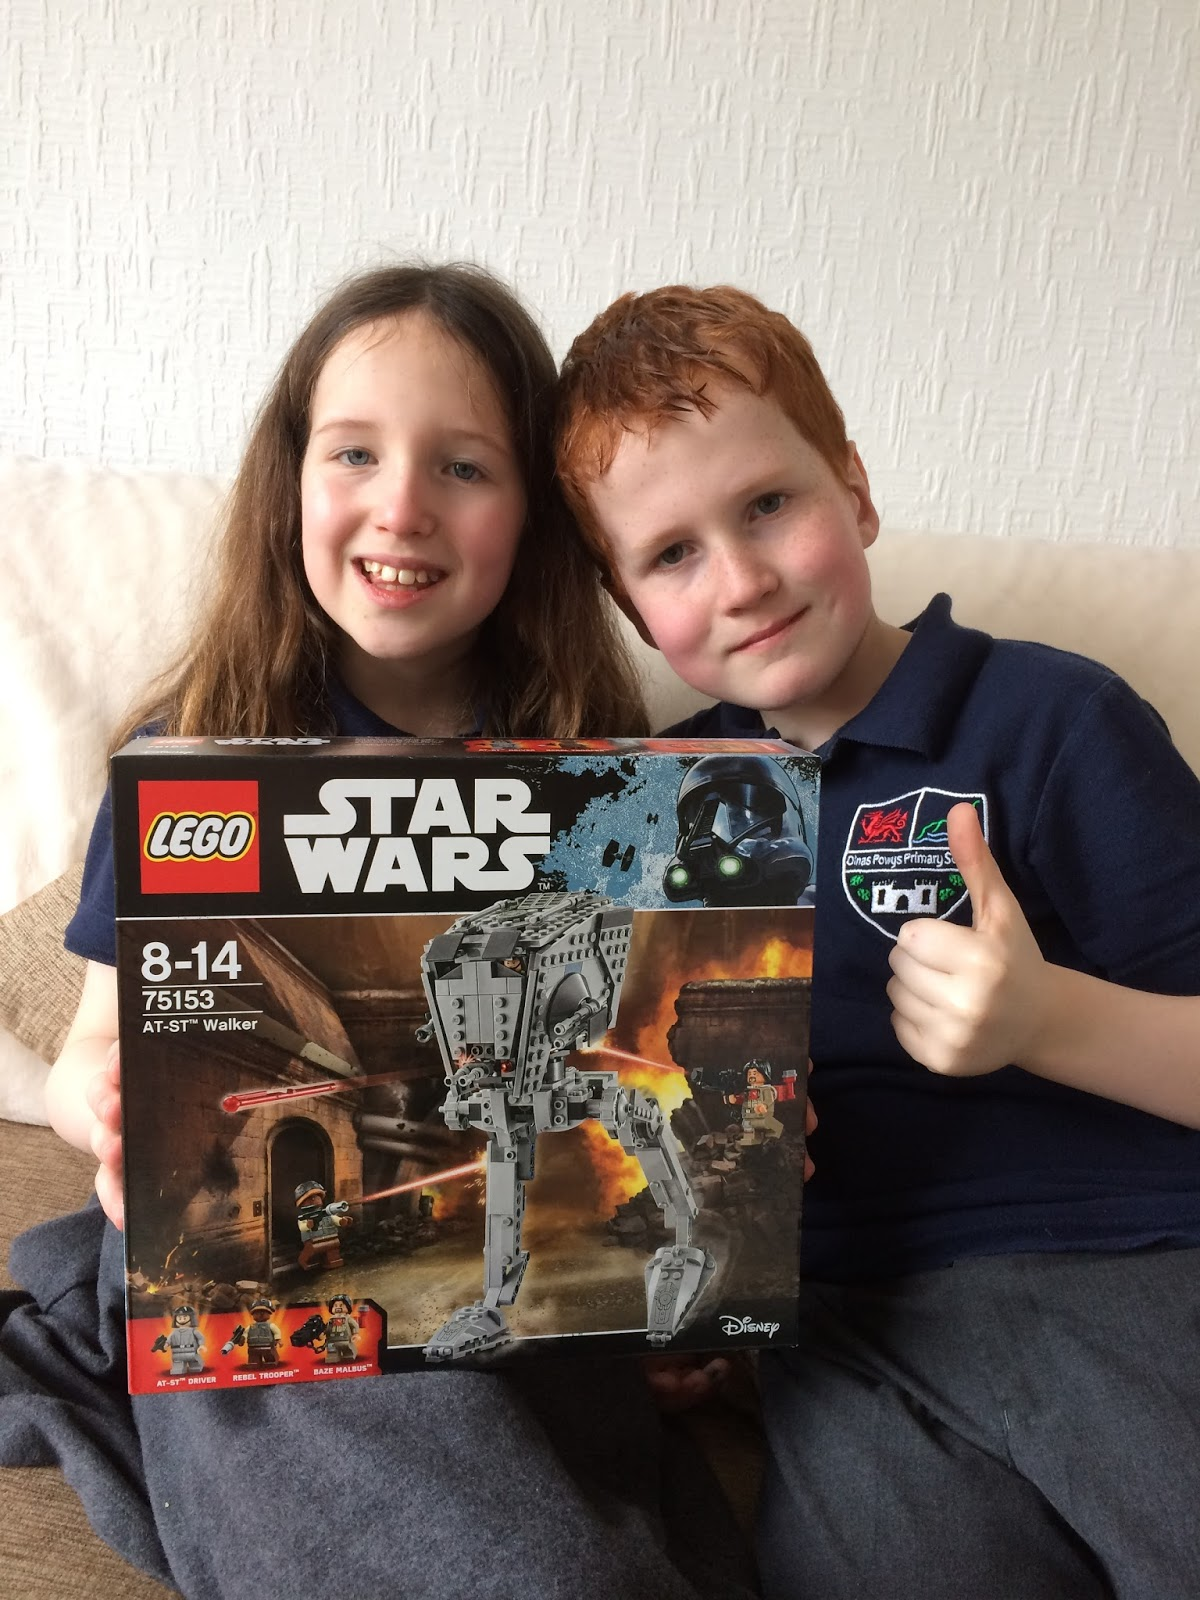 Caitlin & Ieuan with the Lego 75153 Star Wars AT-ST Walker Building Set